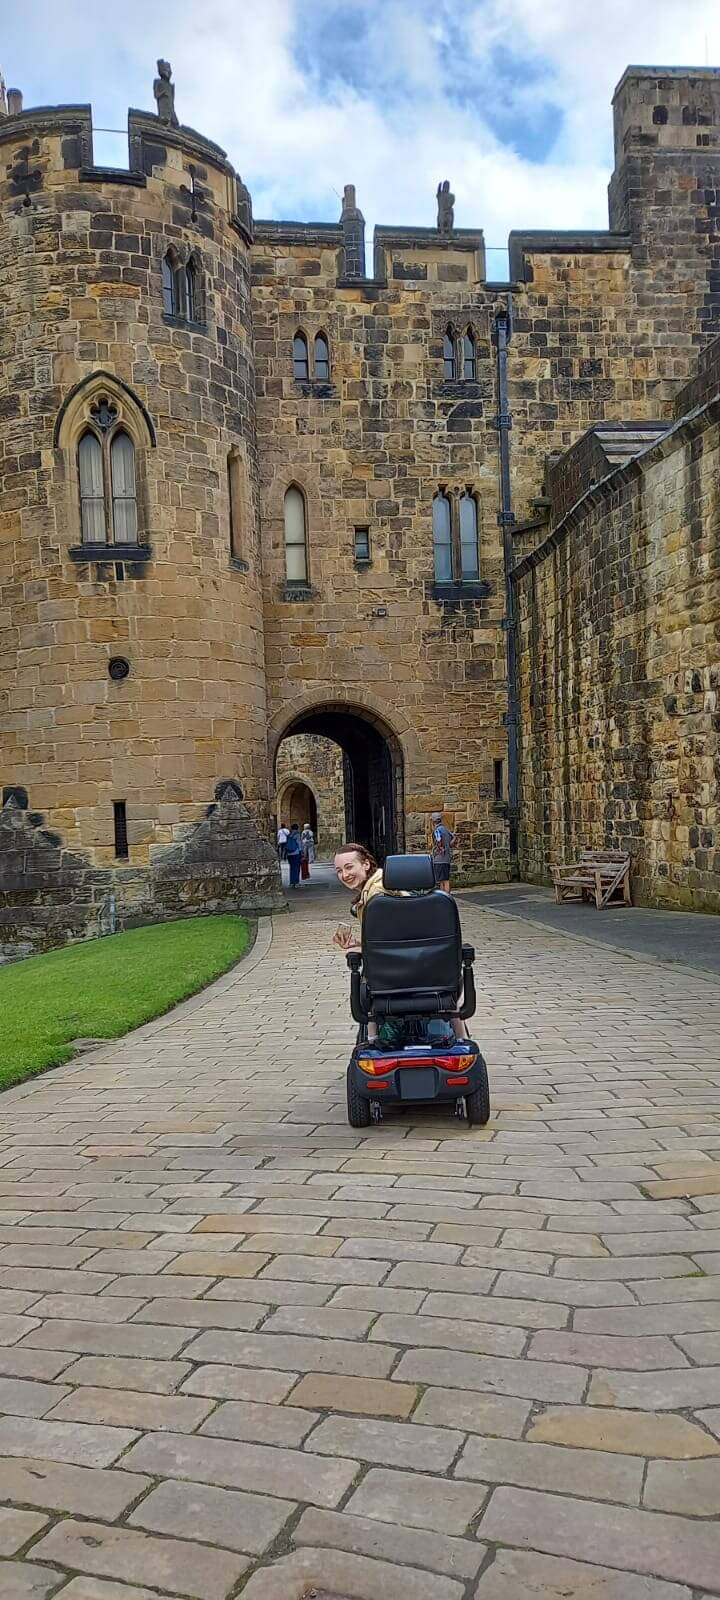 pippa driving mobility scooter along path under majestic castle walls, turning head to peek pack at camera